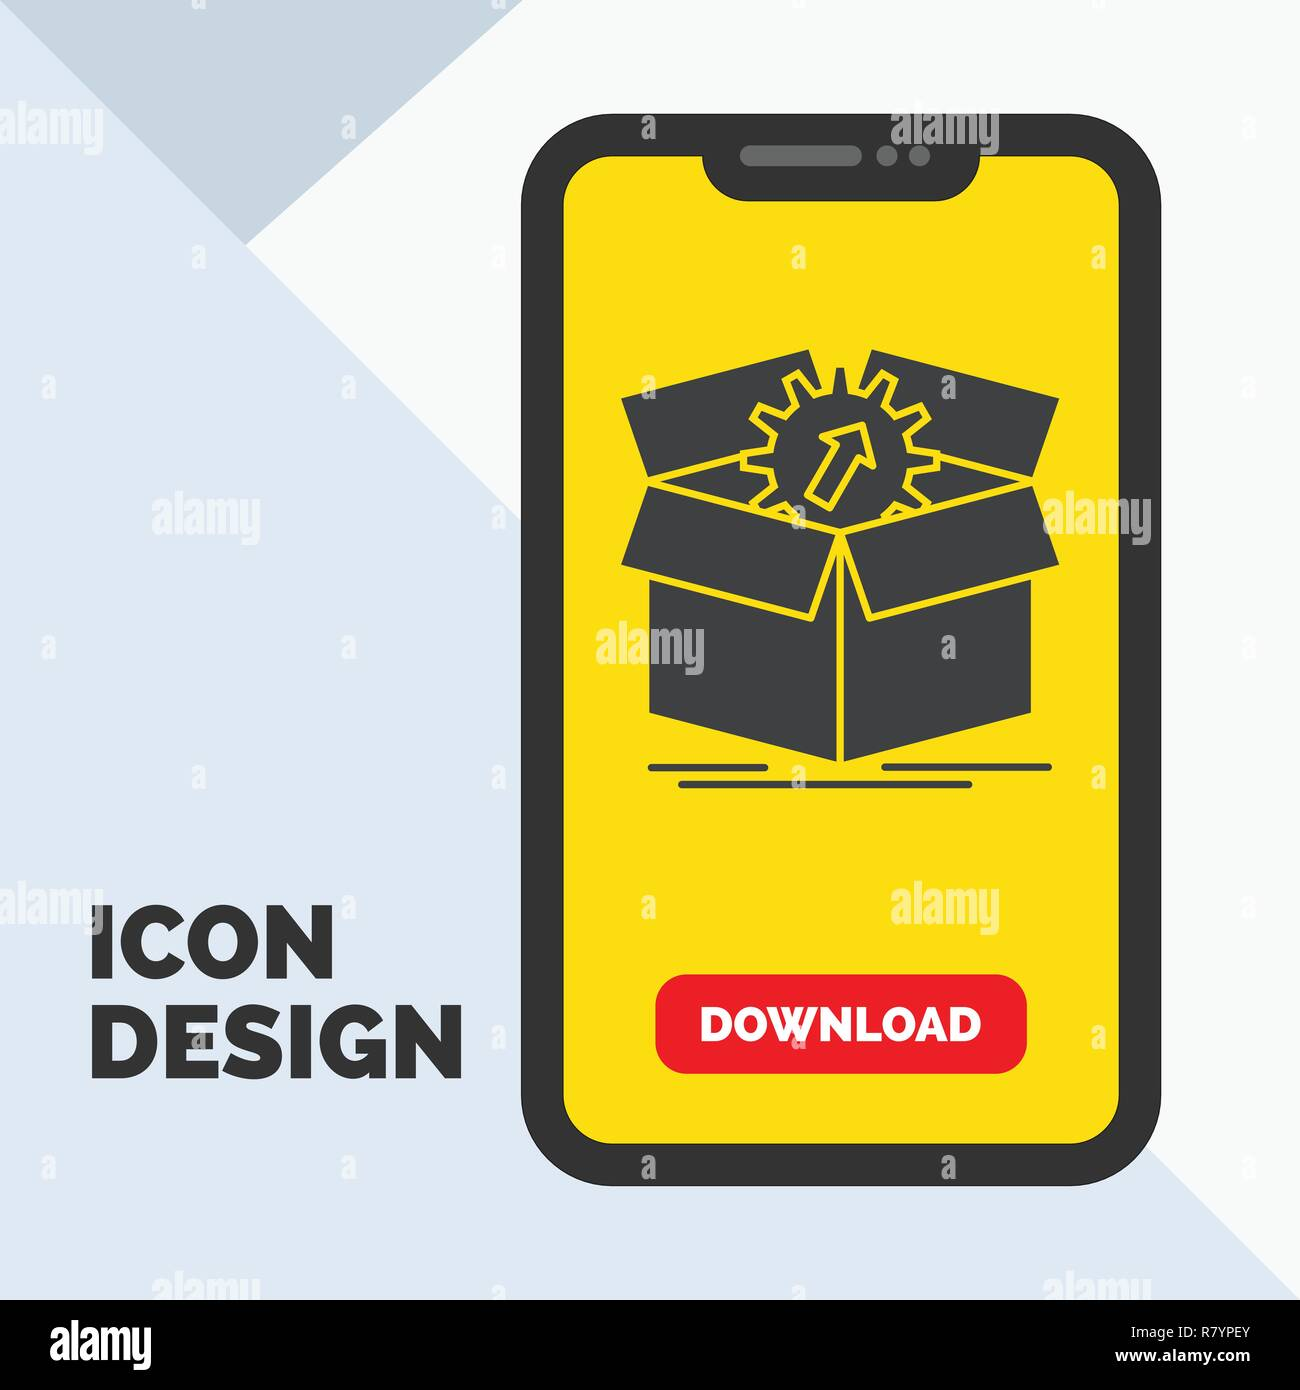 upload, performance, productivity, progress, work Glyph Icon in Mobile for Download Page. Yellow Background - Stock Vector